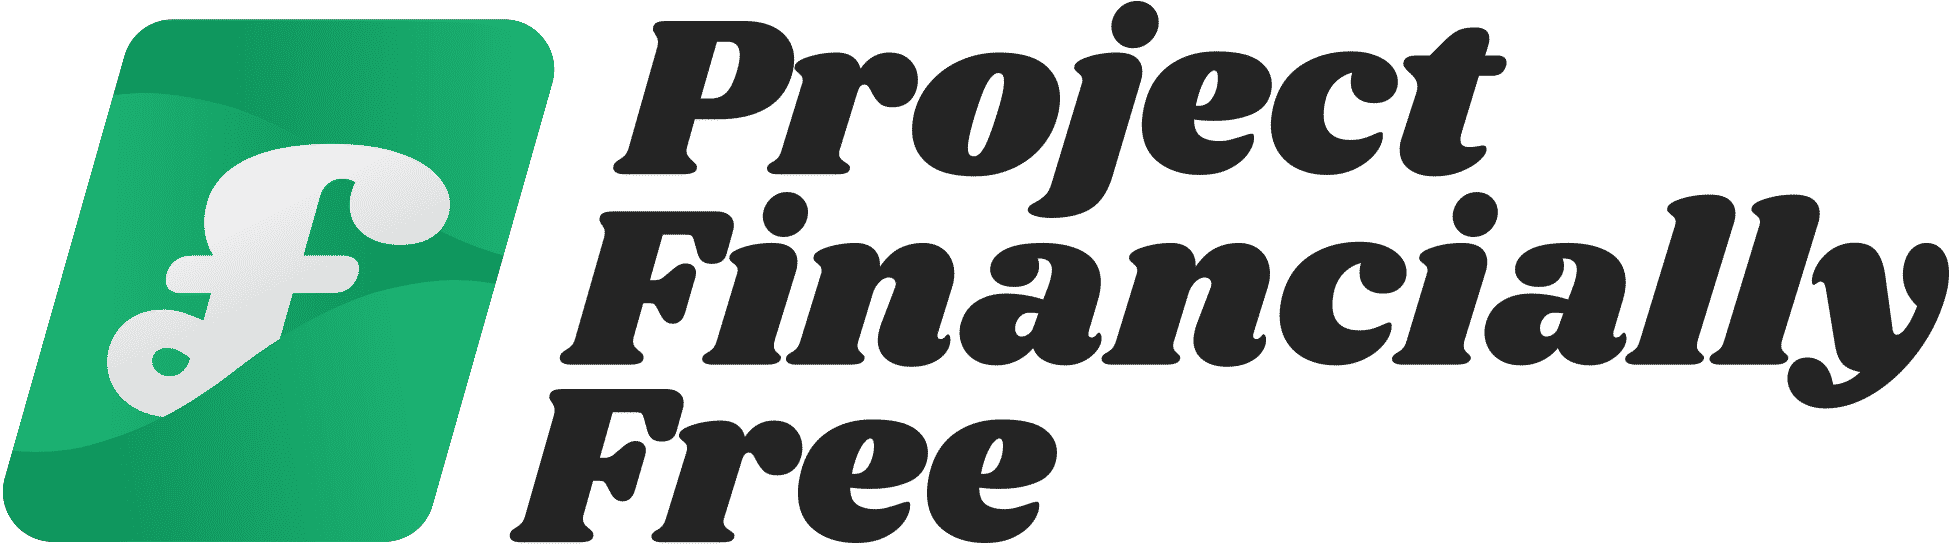 Project Financially Free